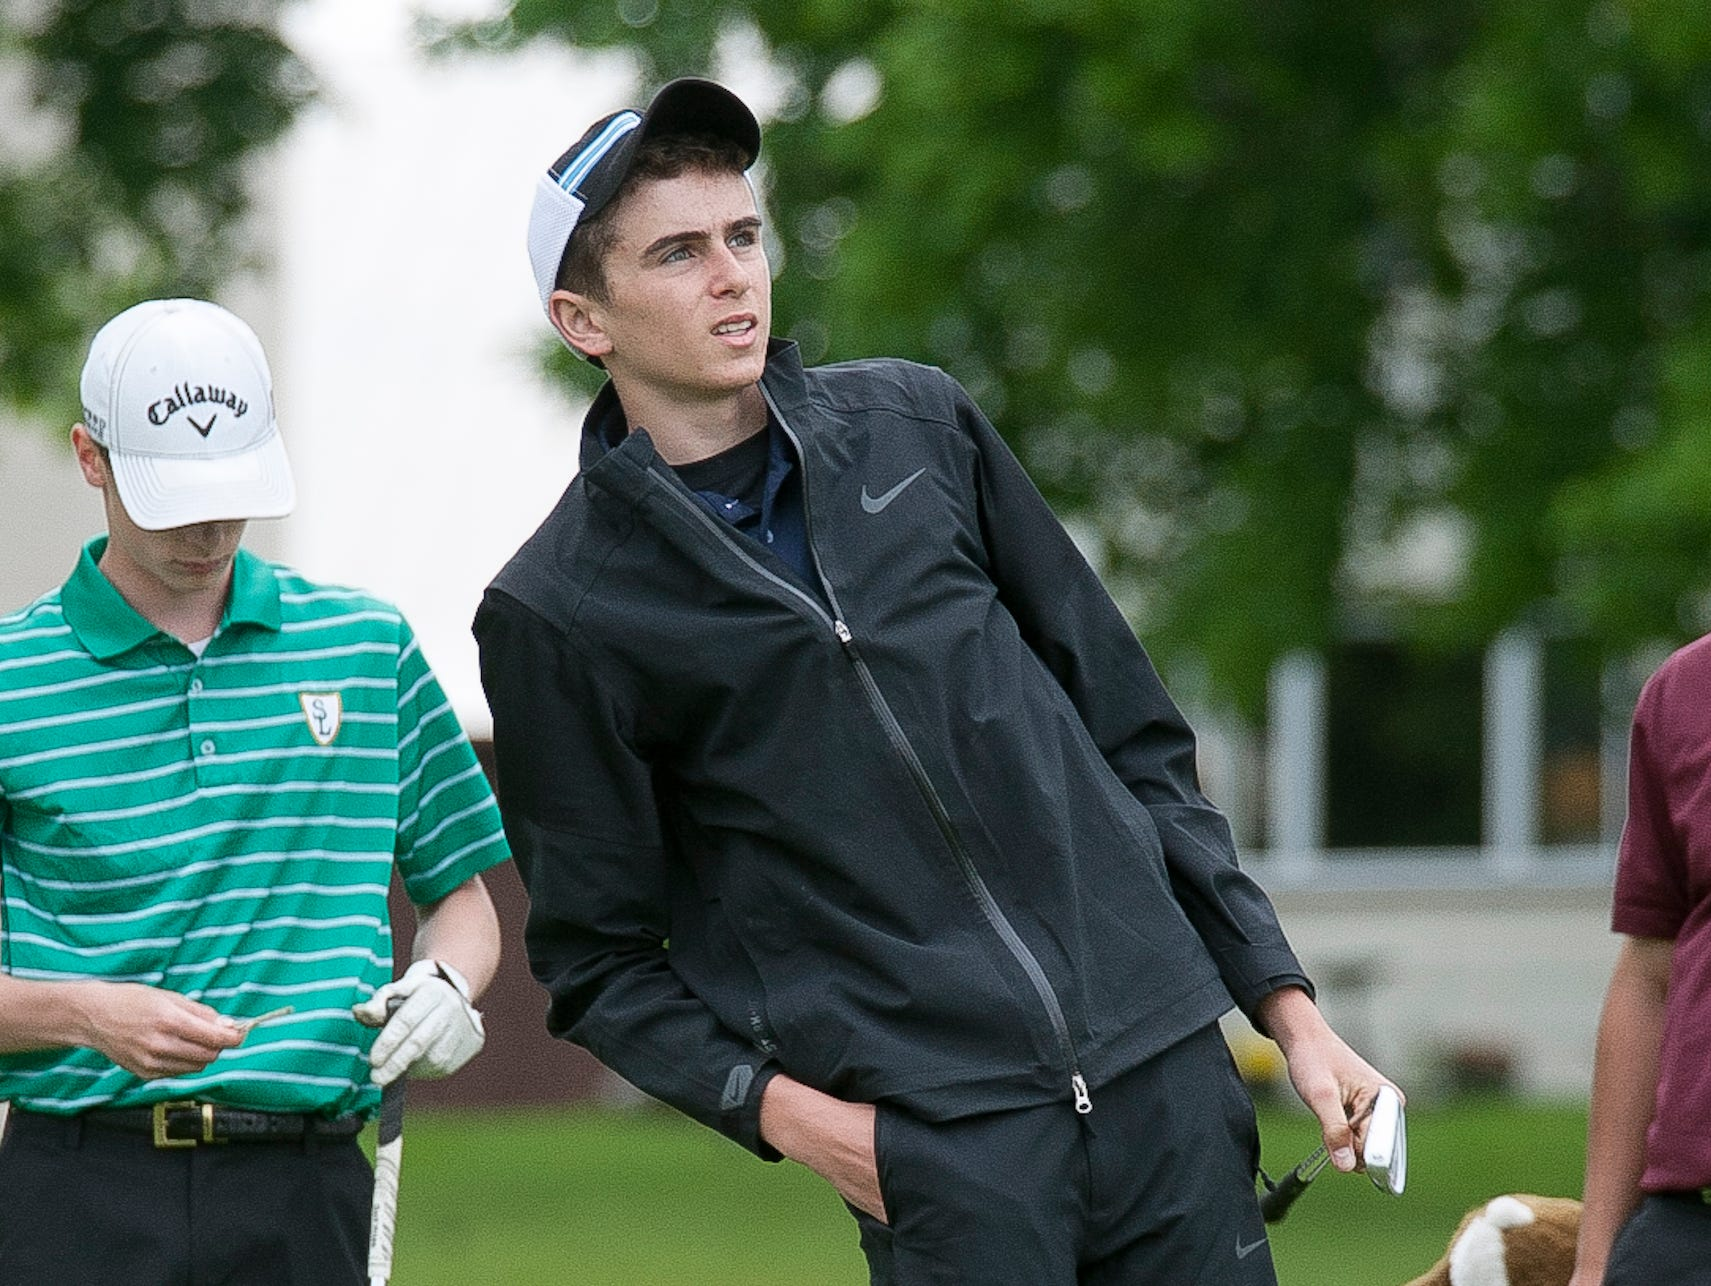 Kohler's Charlie Twohig watches his shot off the tee during Wednesday's WIAA Division 3 regional golf meet at the Town and Country Club in Sheboygan.